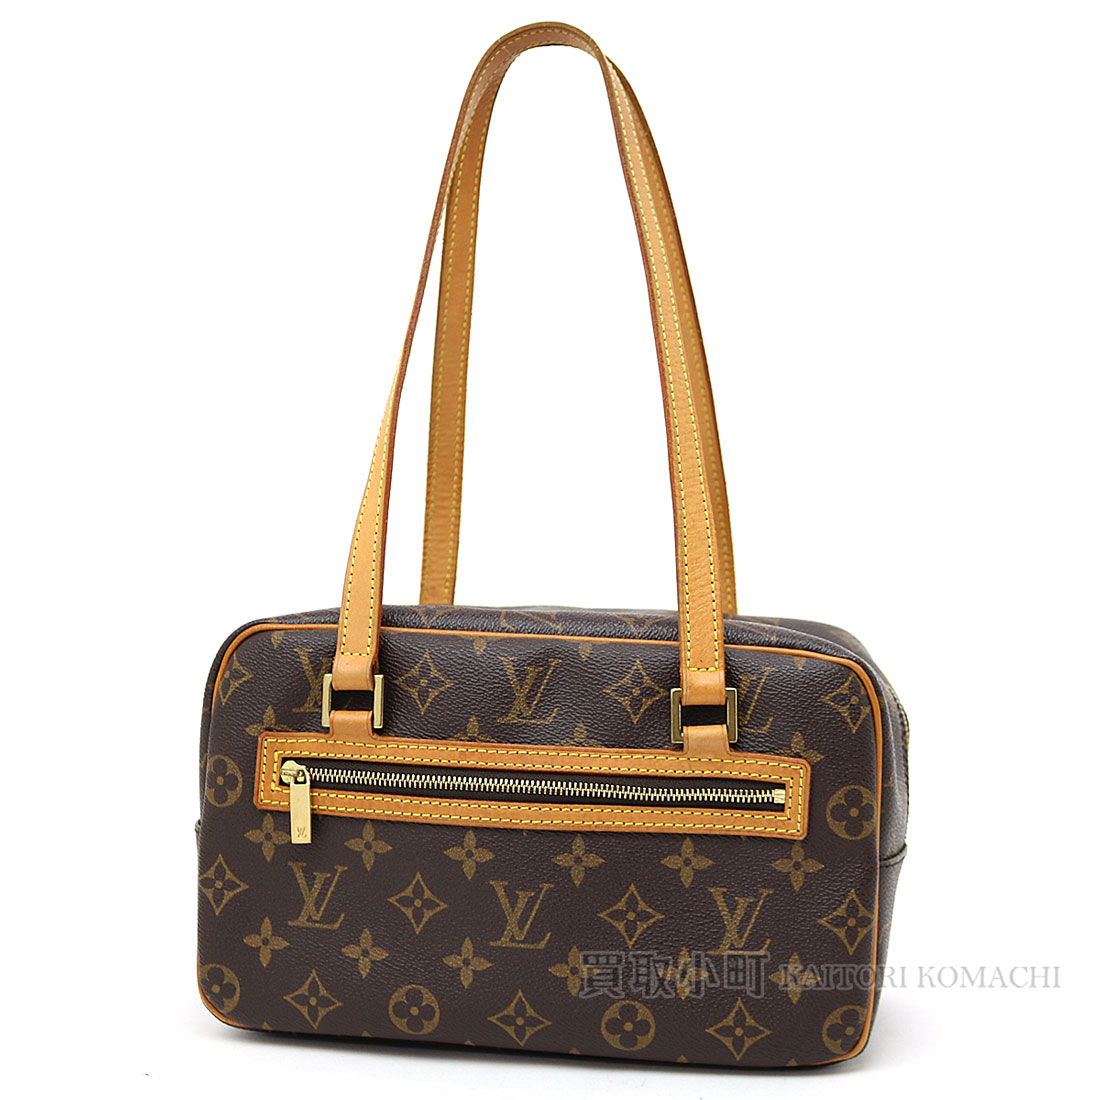 09dd3406e KAITORIKOMACHI: Louis Vuitton M51182 protagonist MM monogram shoulder bag  tote bag Boston bag bowling bag LV CITE MM MONOGRAM | Rakuten Global Market